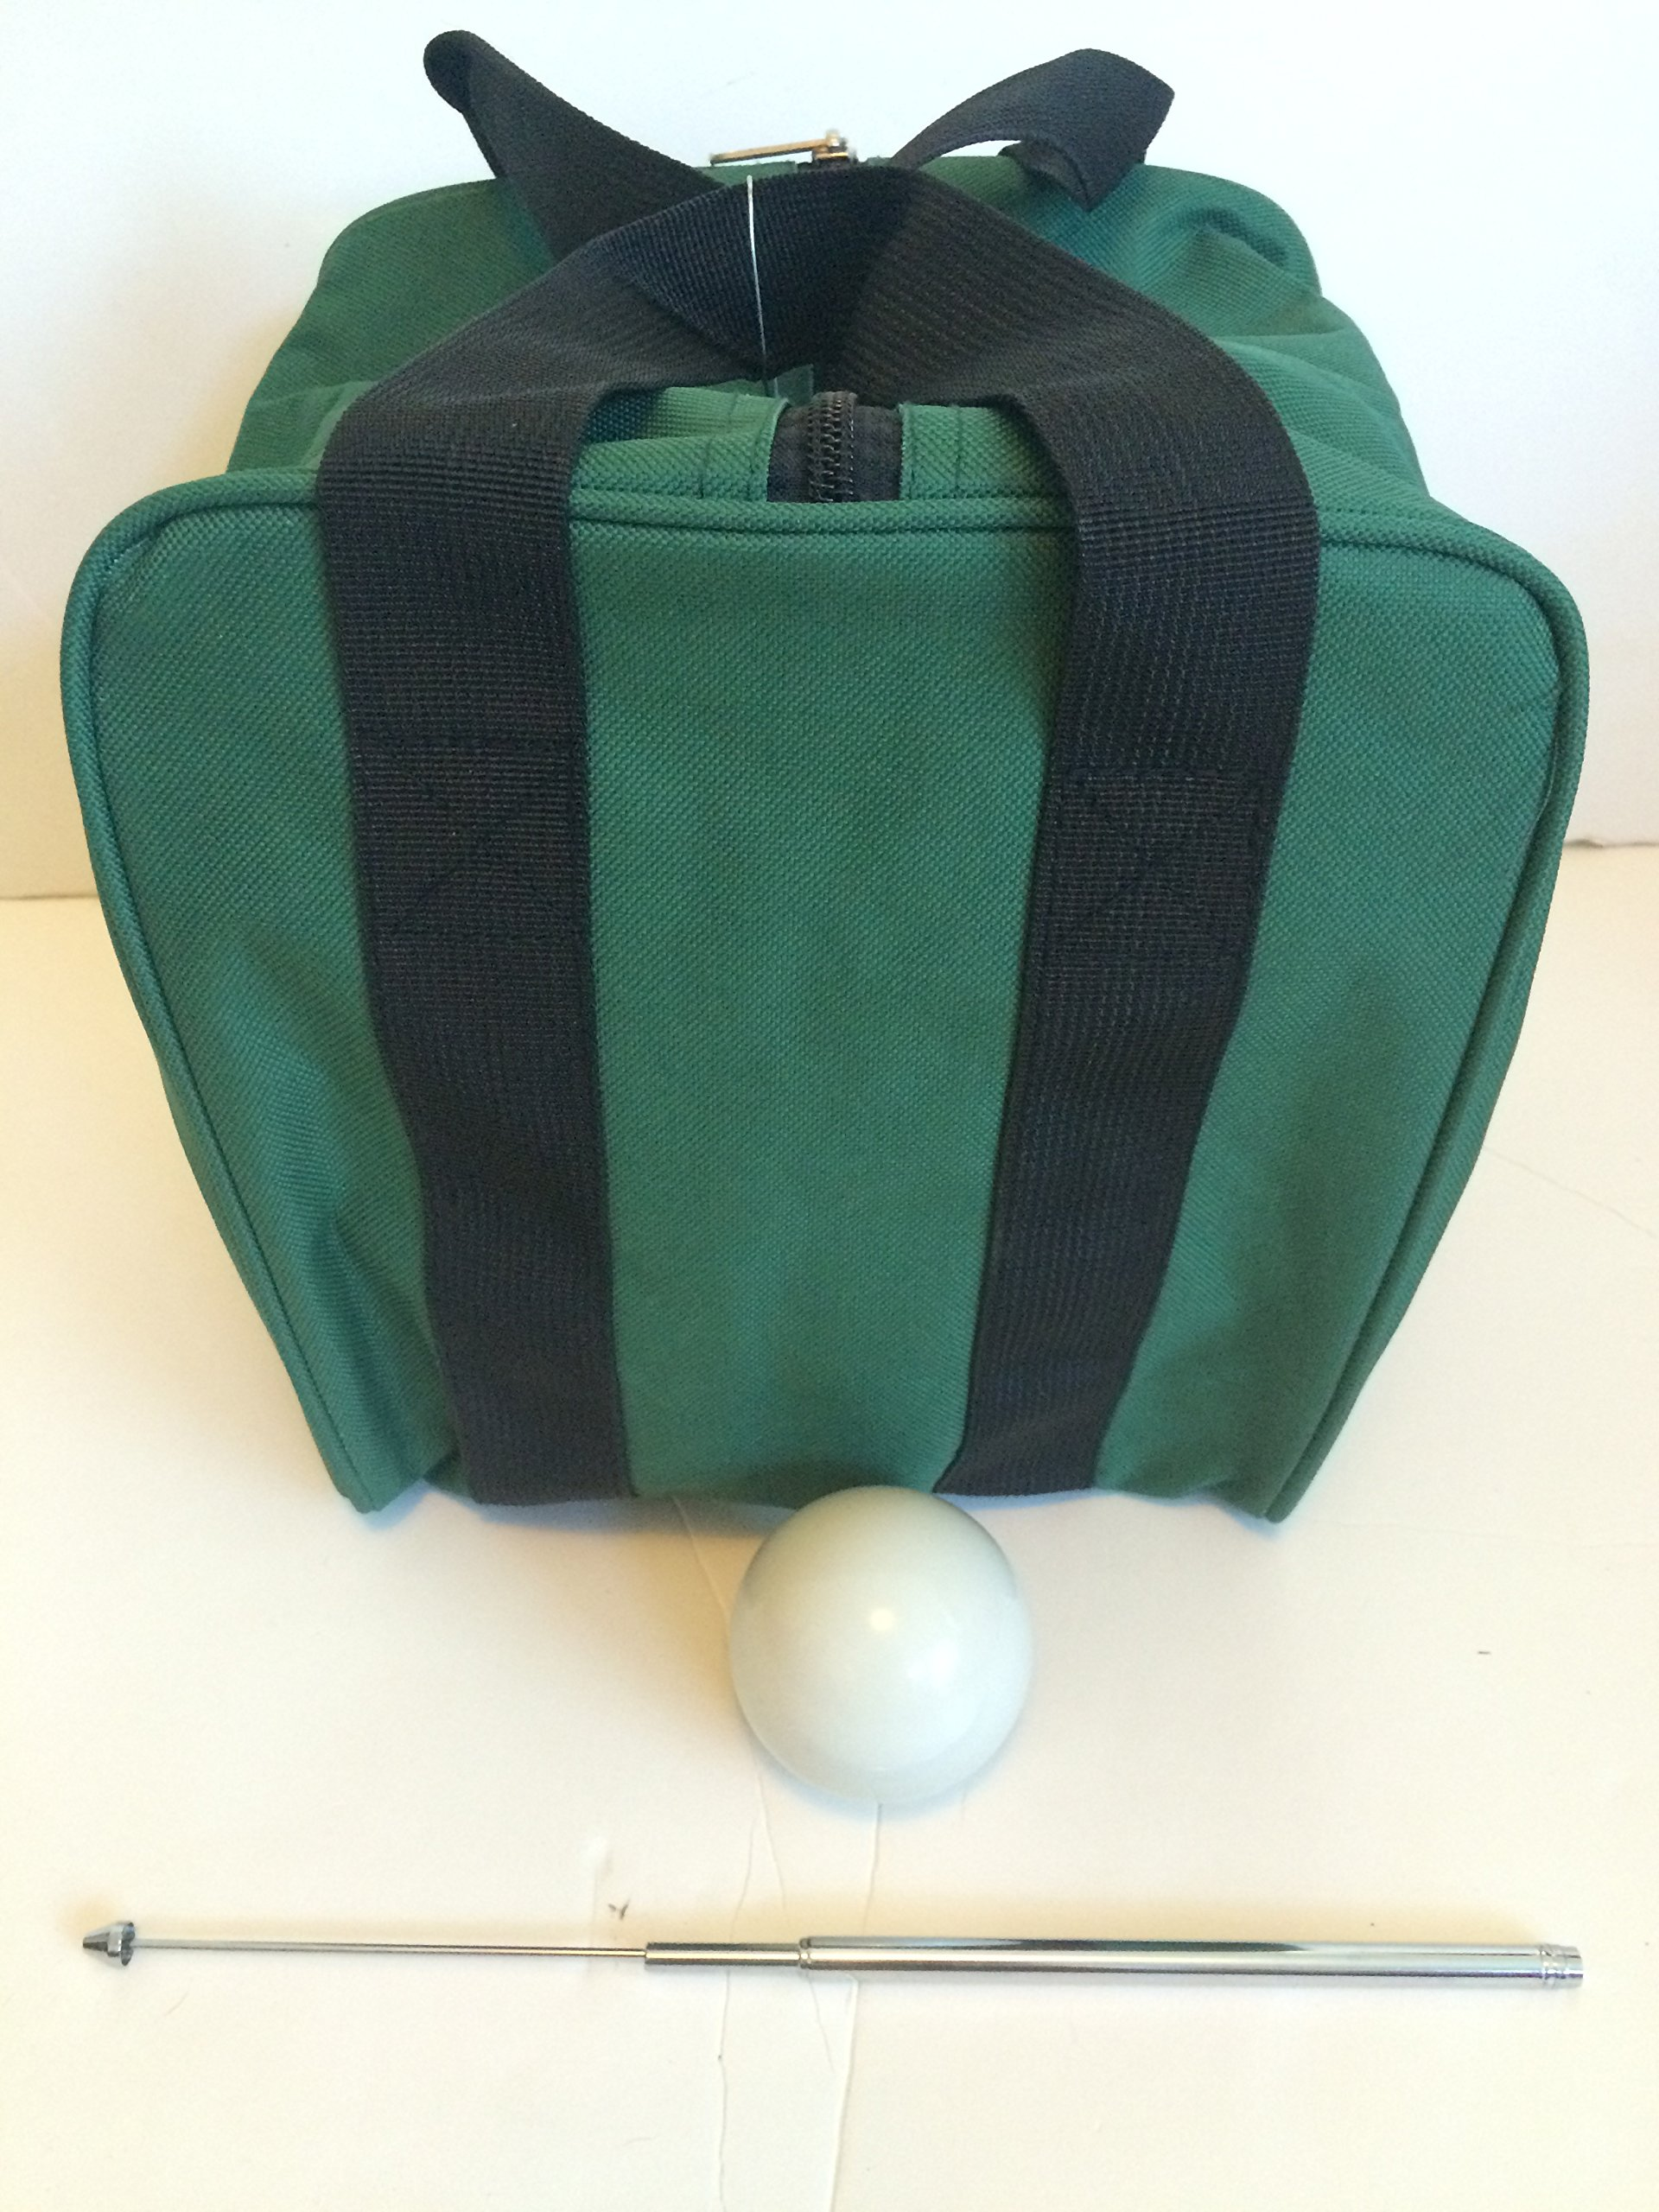 Unique Bocce Accessories Package - Extra Heavy Duty Nylon Bocce Bag (Green with Black Handles), White pallina, Extendable Measuring Device by BuyBocceBalls